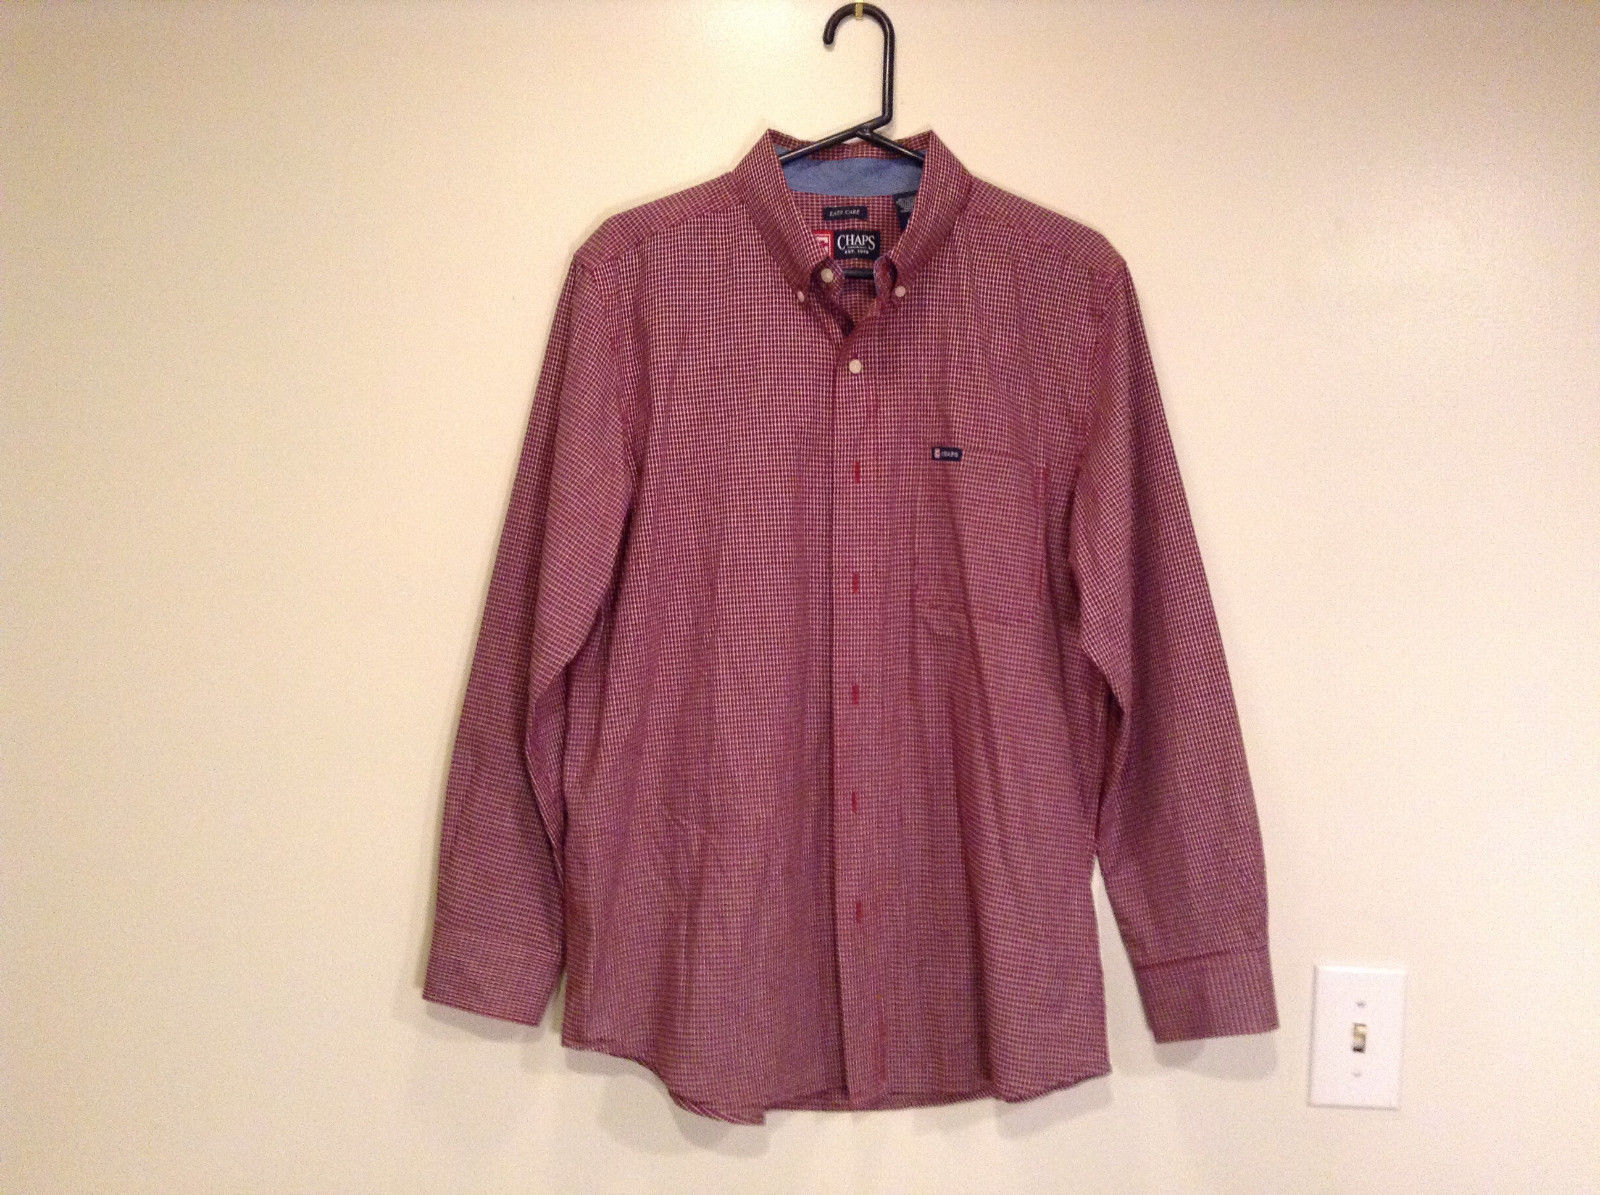 Long Sleeve Dark Red and White Plaid Button Front Dress Shirt by Chaps Size L